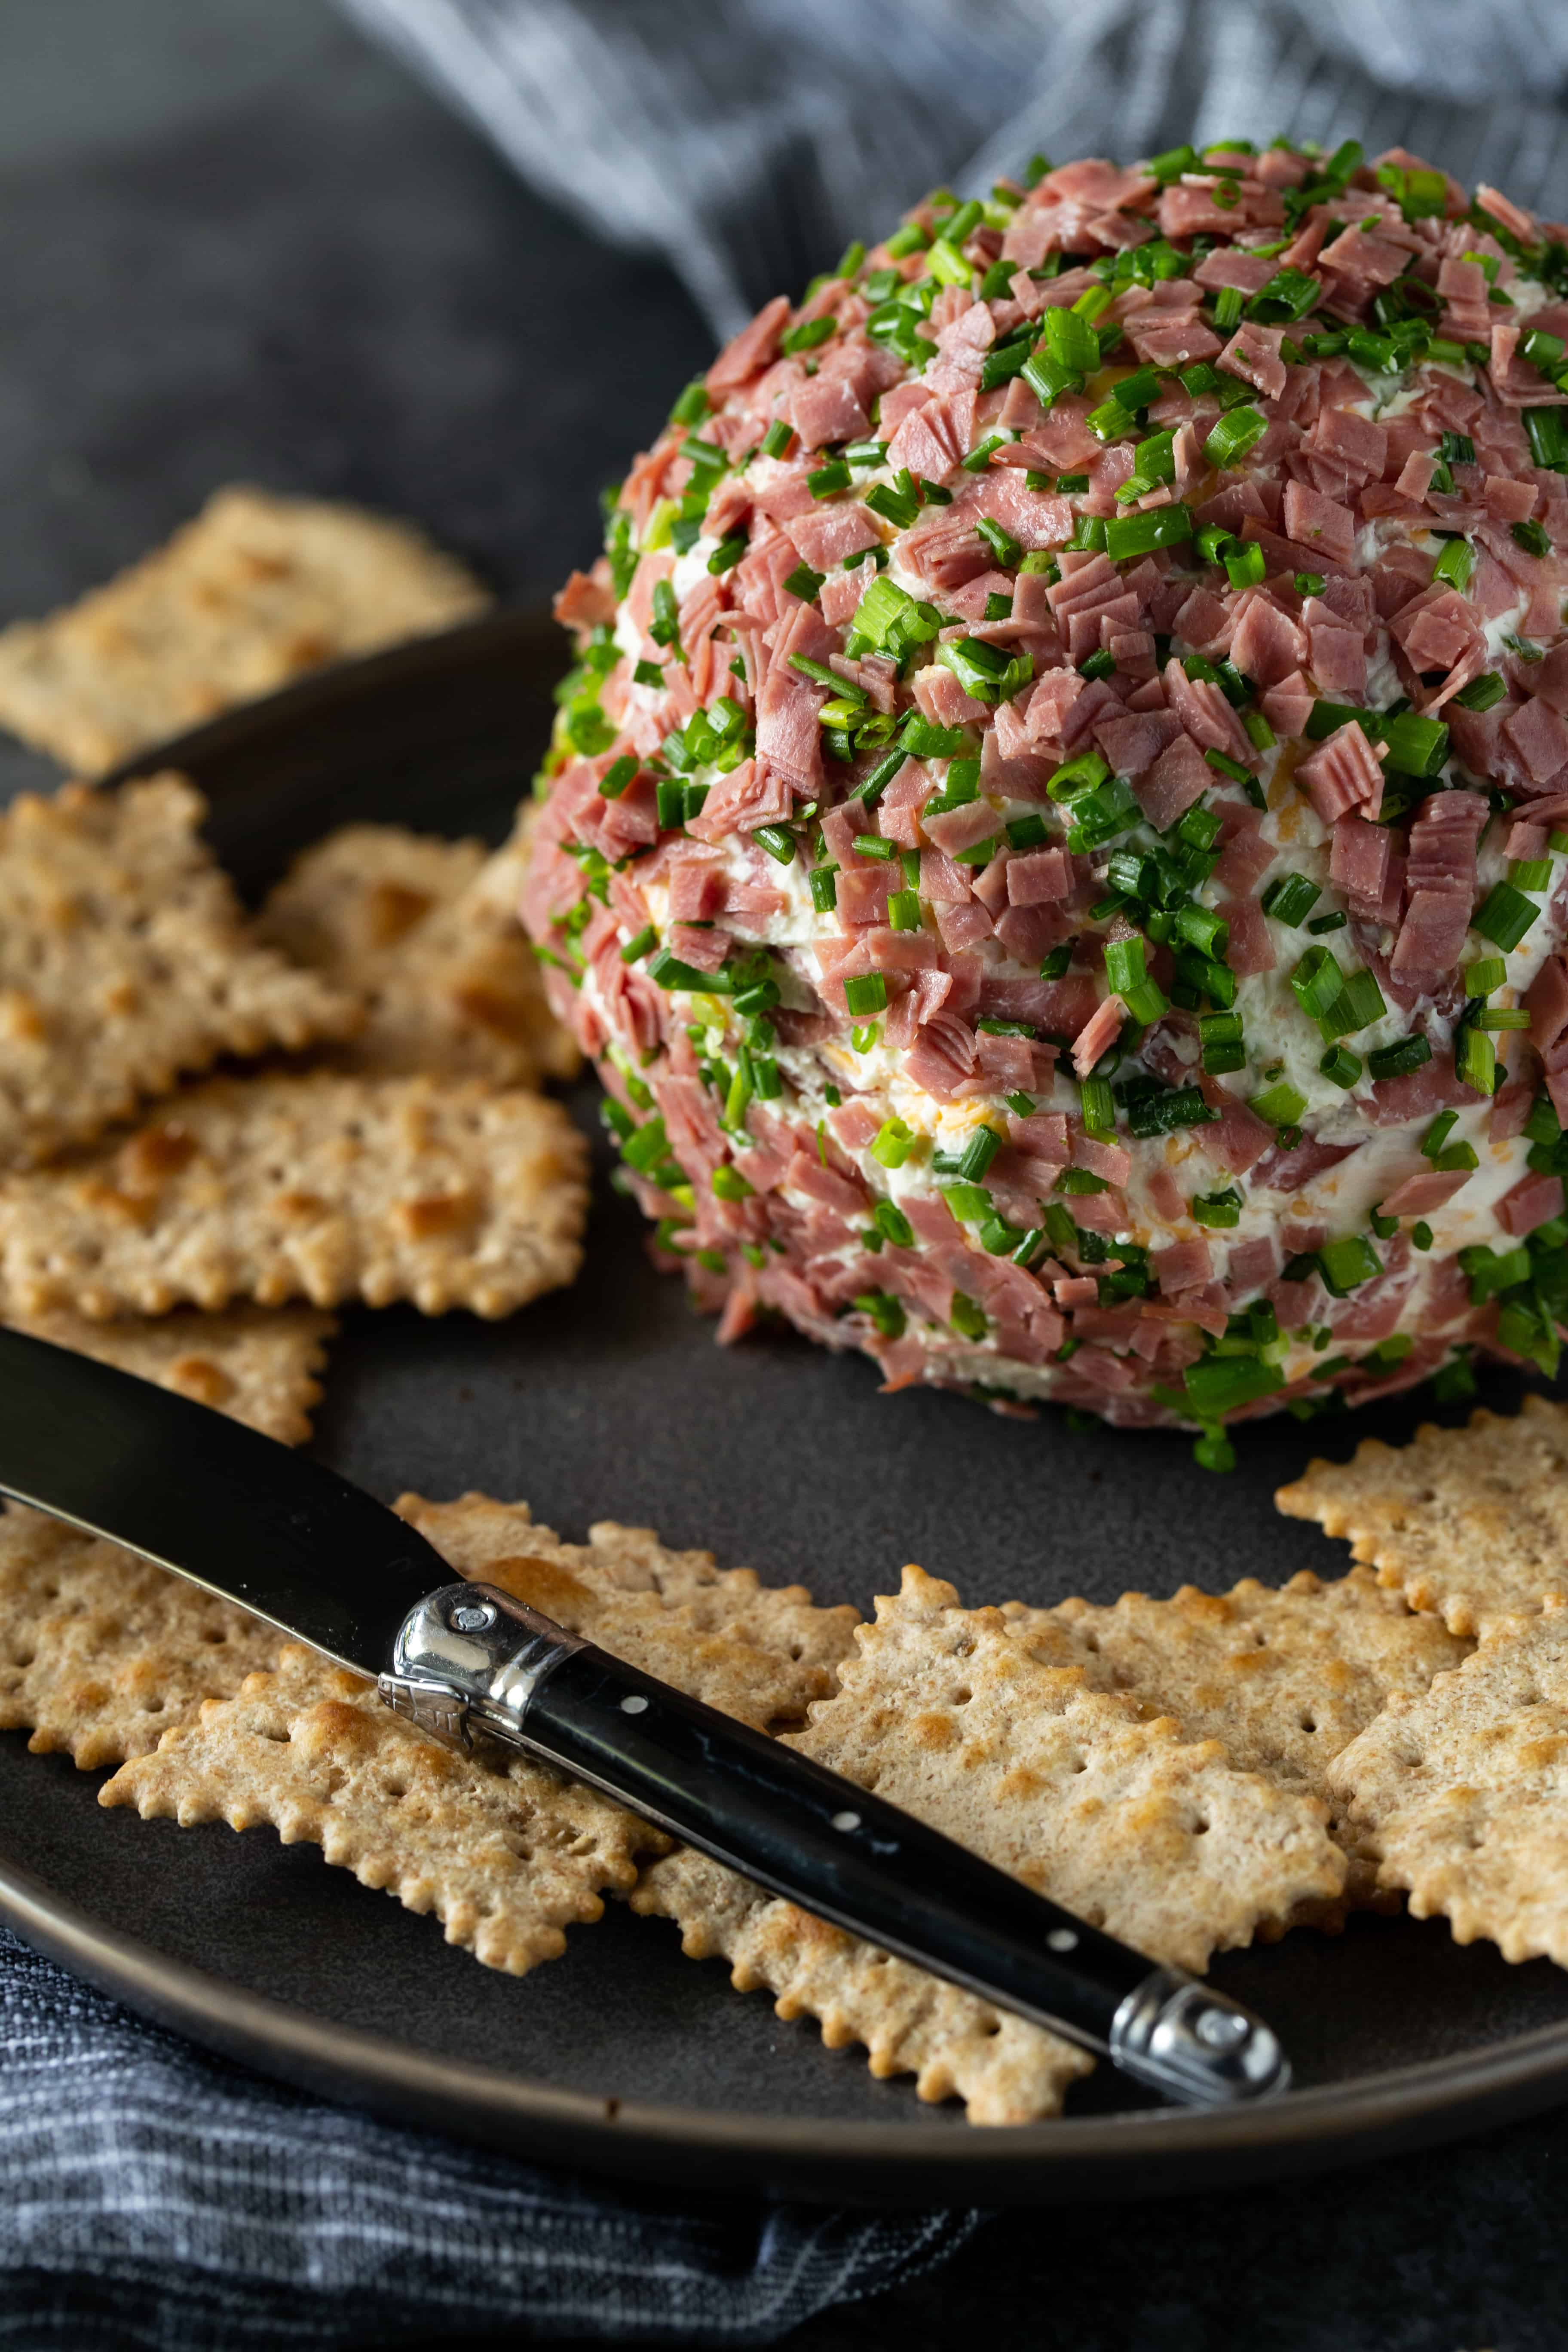 Chipped Beef Cheese ball on a gray plate with black spreader and crackers on the side.